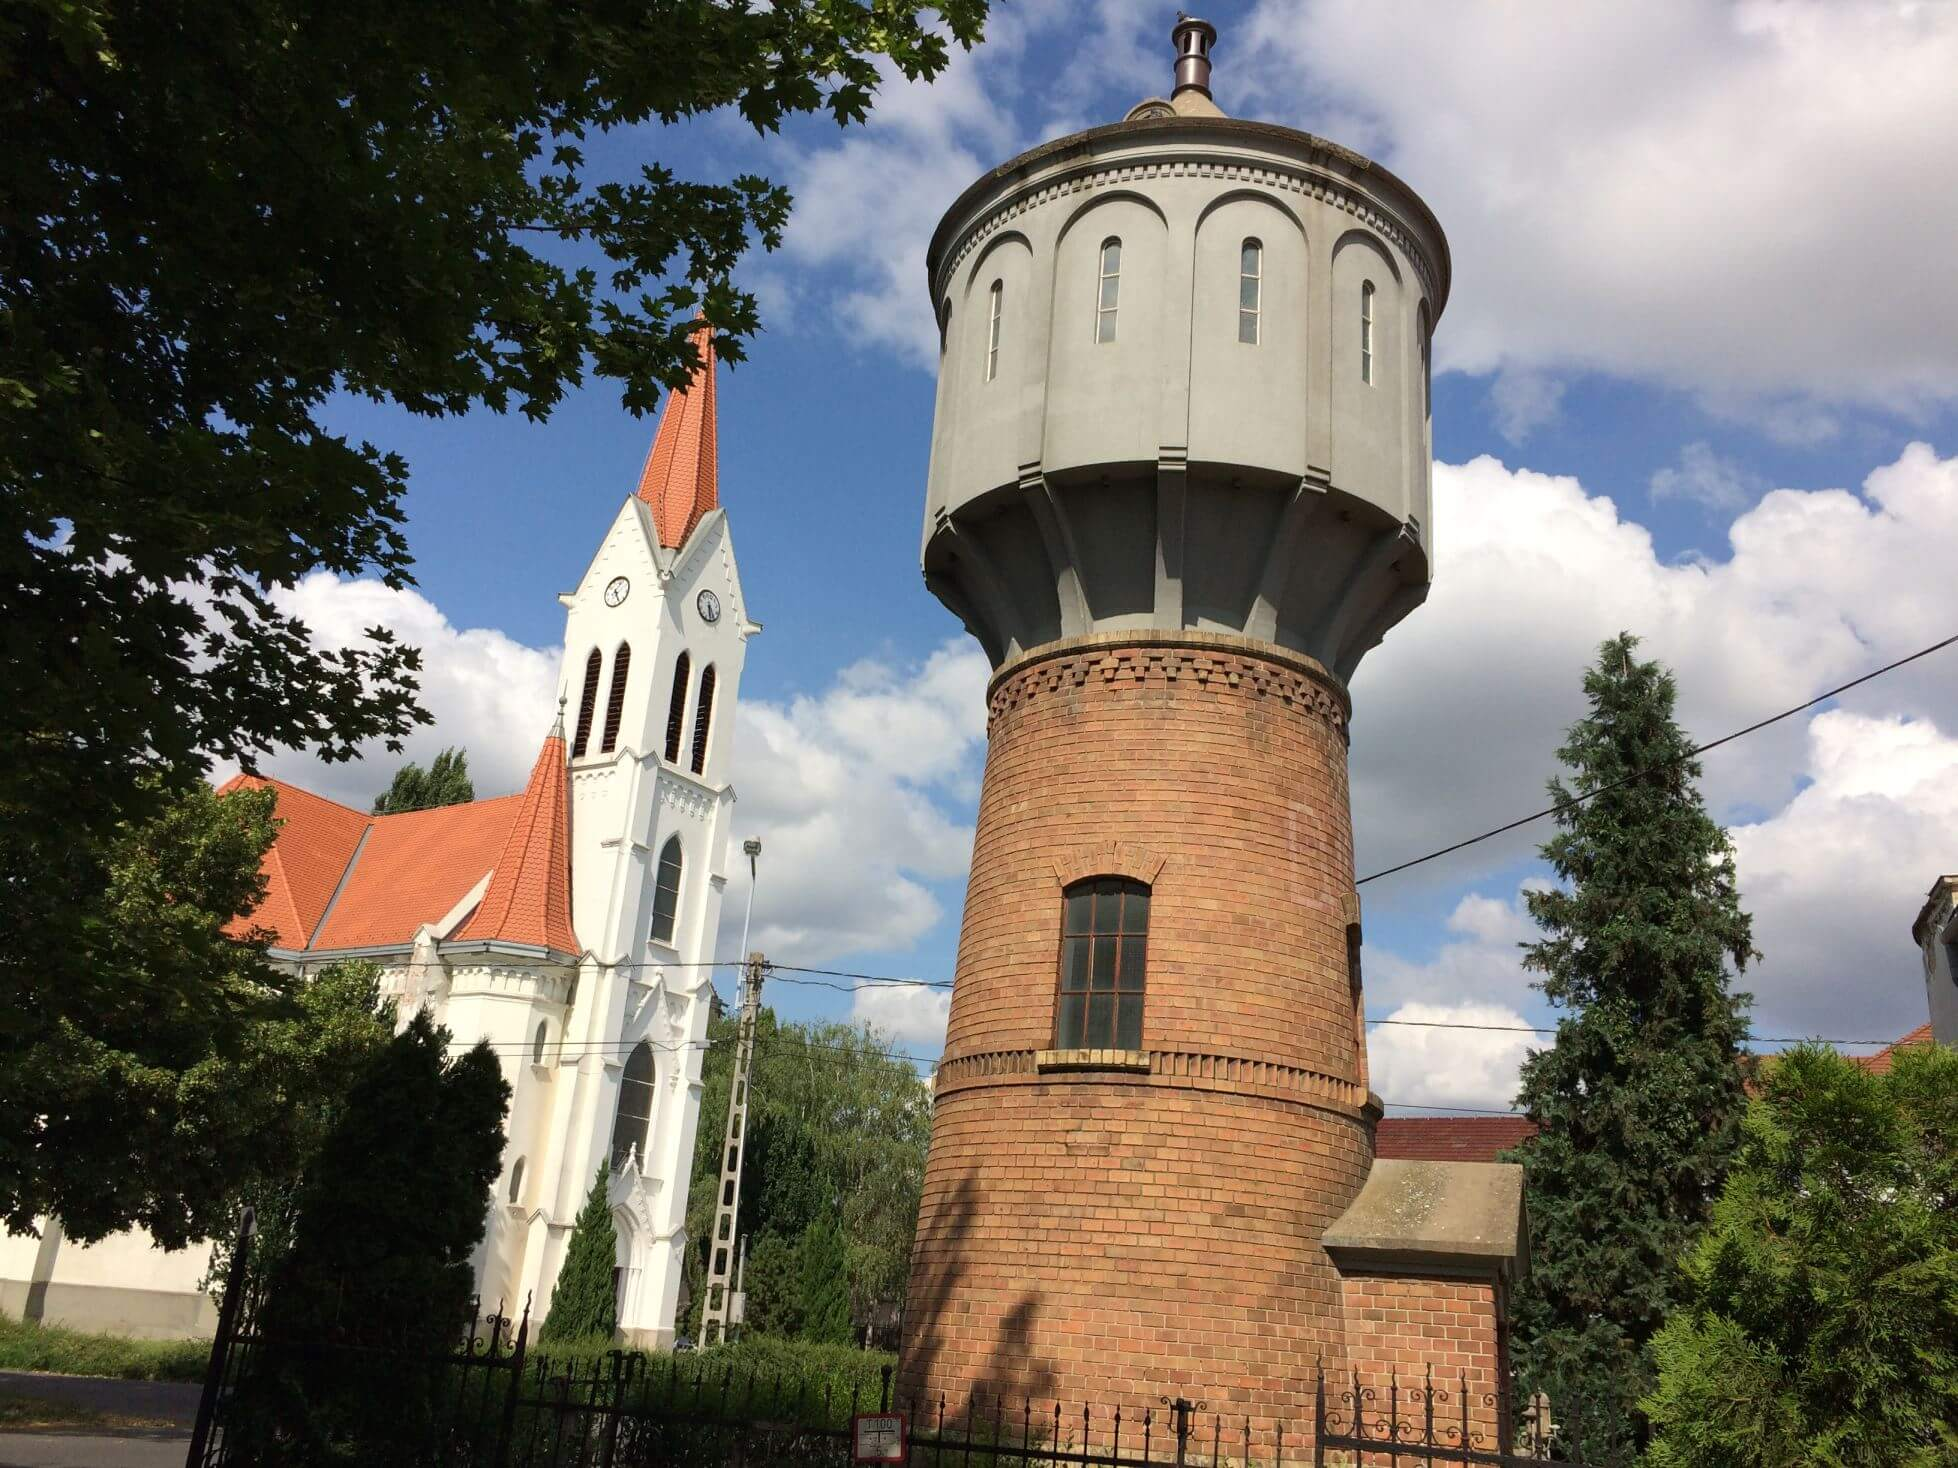 Gyula Water Tower, Hungary